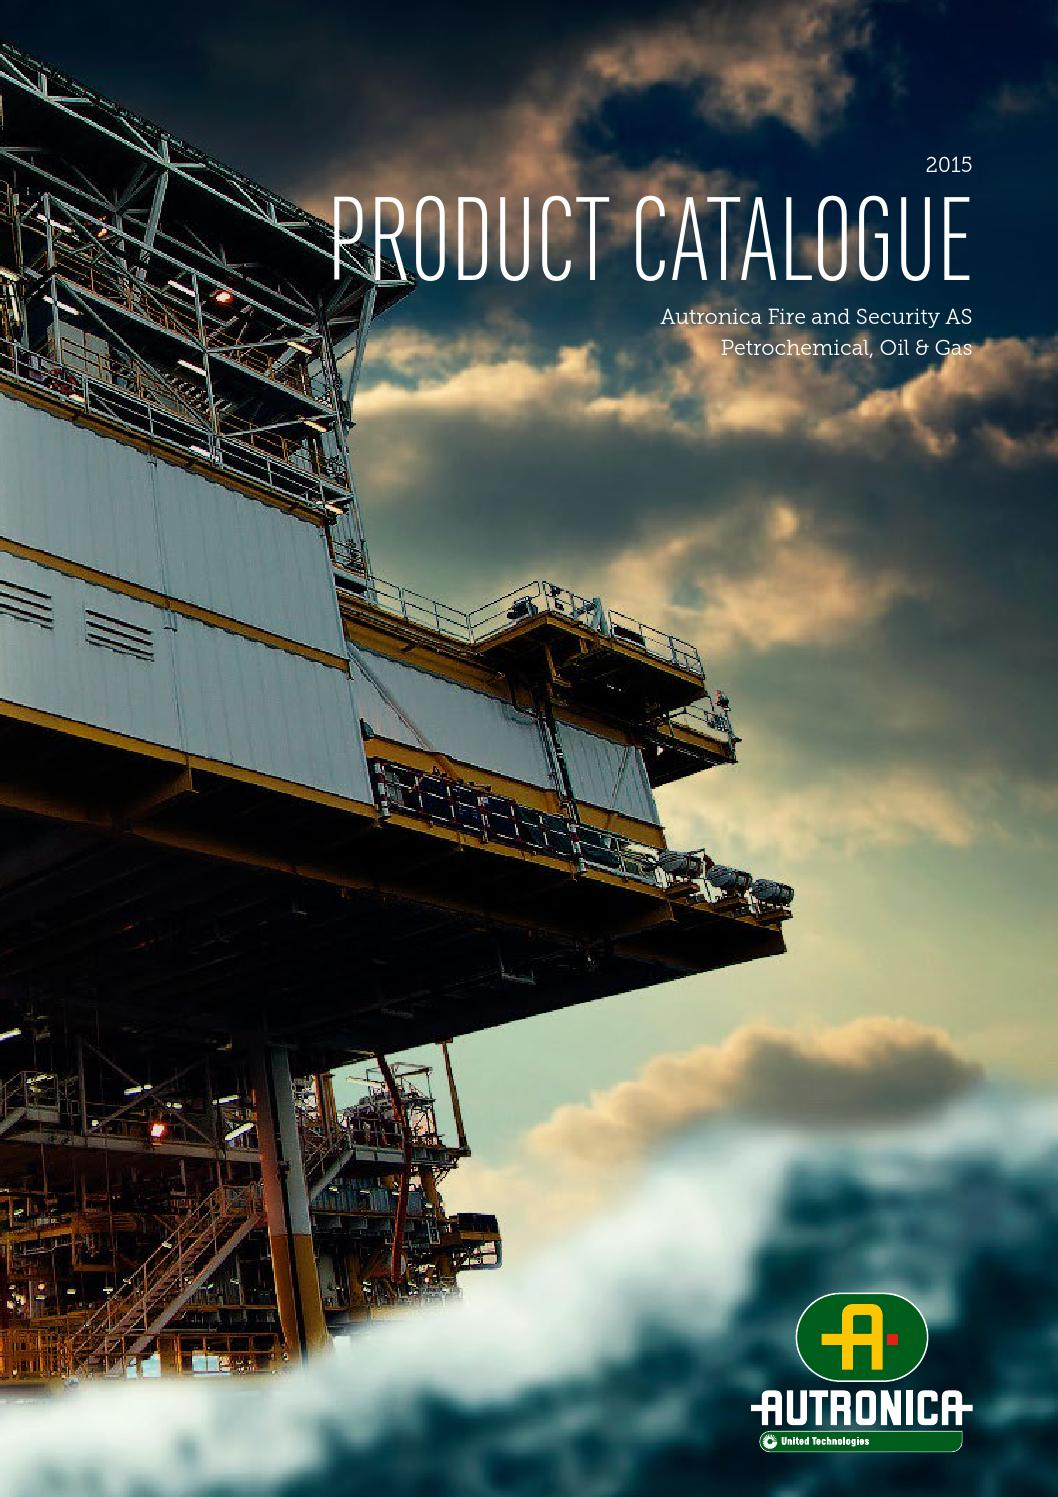 Petrochemical, oil & gas product catalogue 2015 by Autronica Fire &  Security - issuu